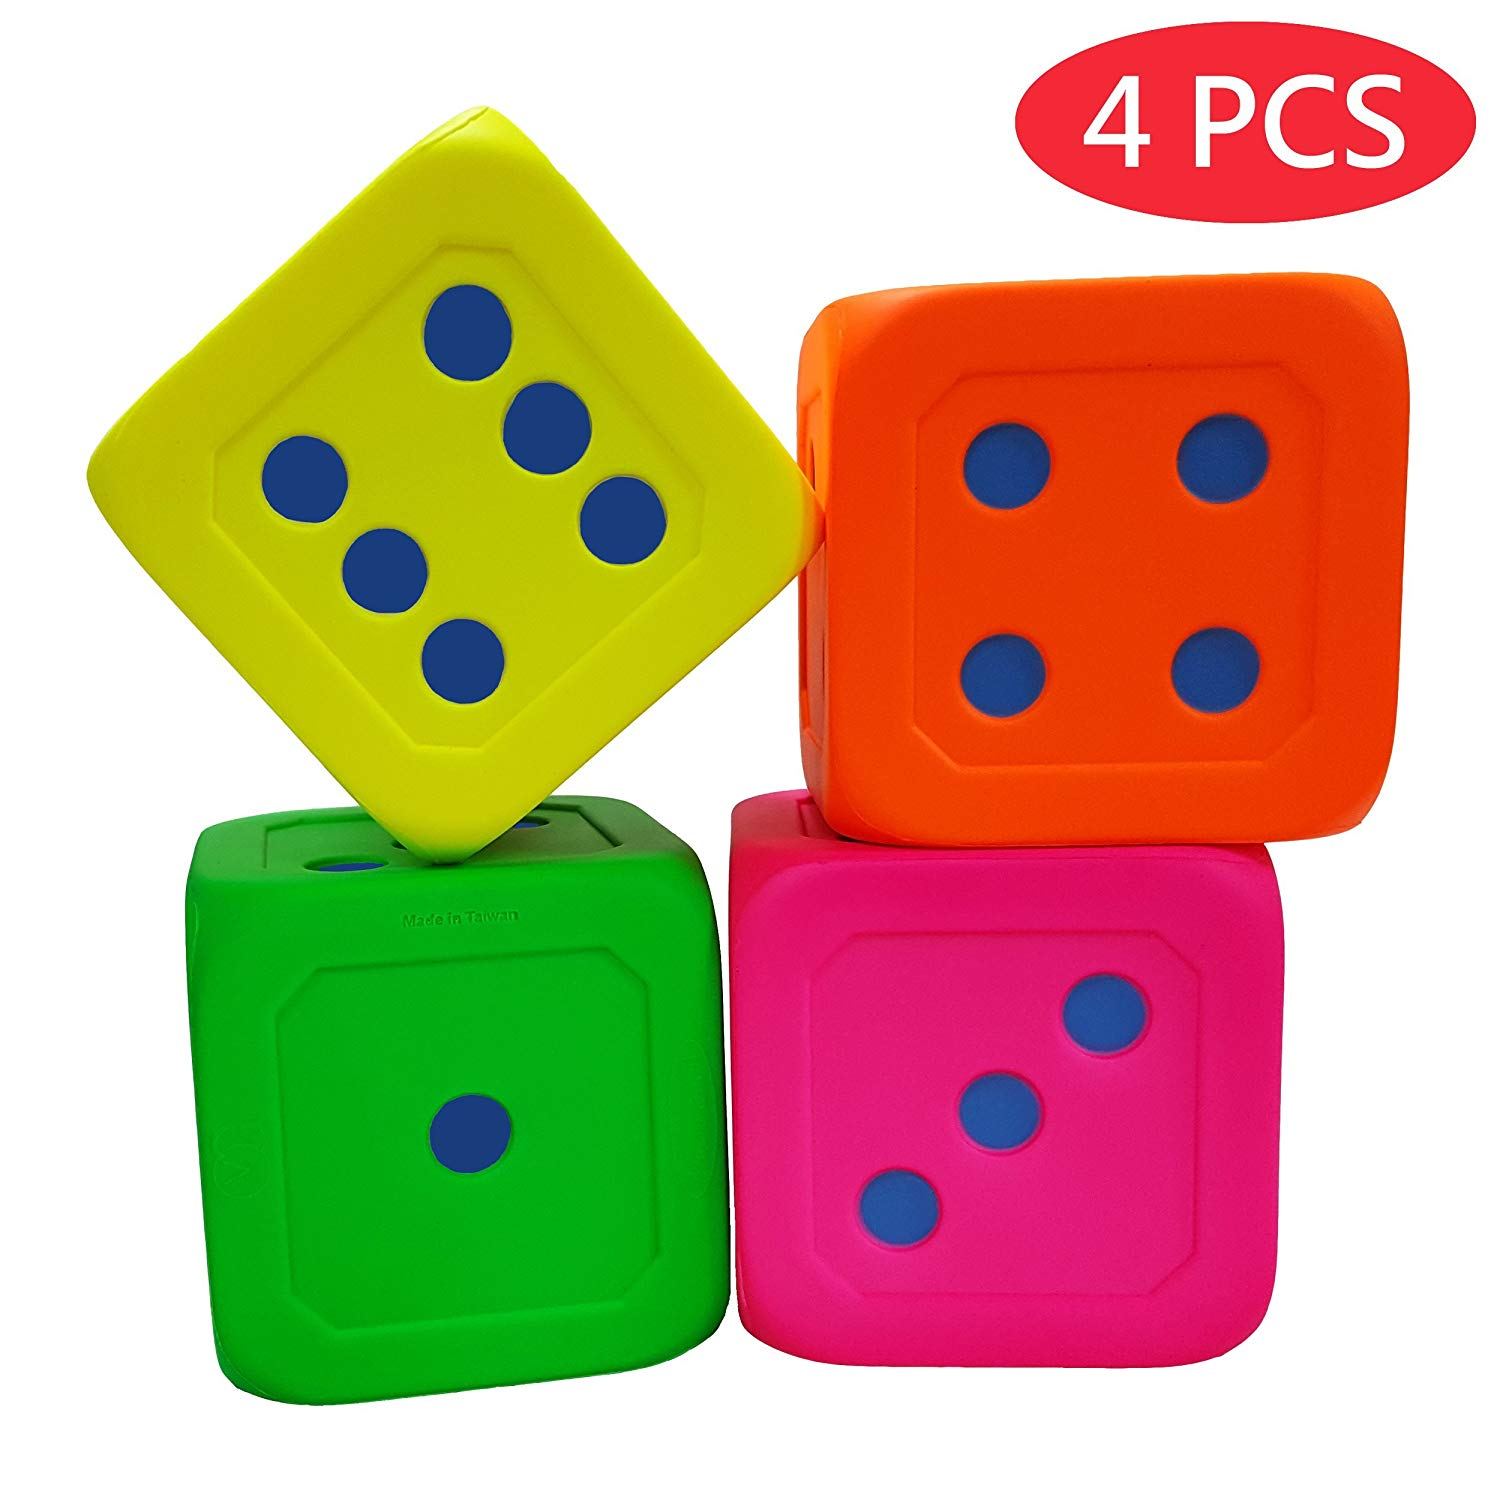 Macro Giant 6 Inch Soft Foam Jumbo Big Playing Dice, Set of 4, Neon Colors, Round Edge, Toy Brick, Board Games, Math Teaching, Family Game, Wedding Games, Kid Toy Gifts, Birthday Gifts, Oversized game